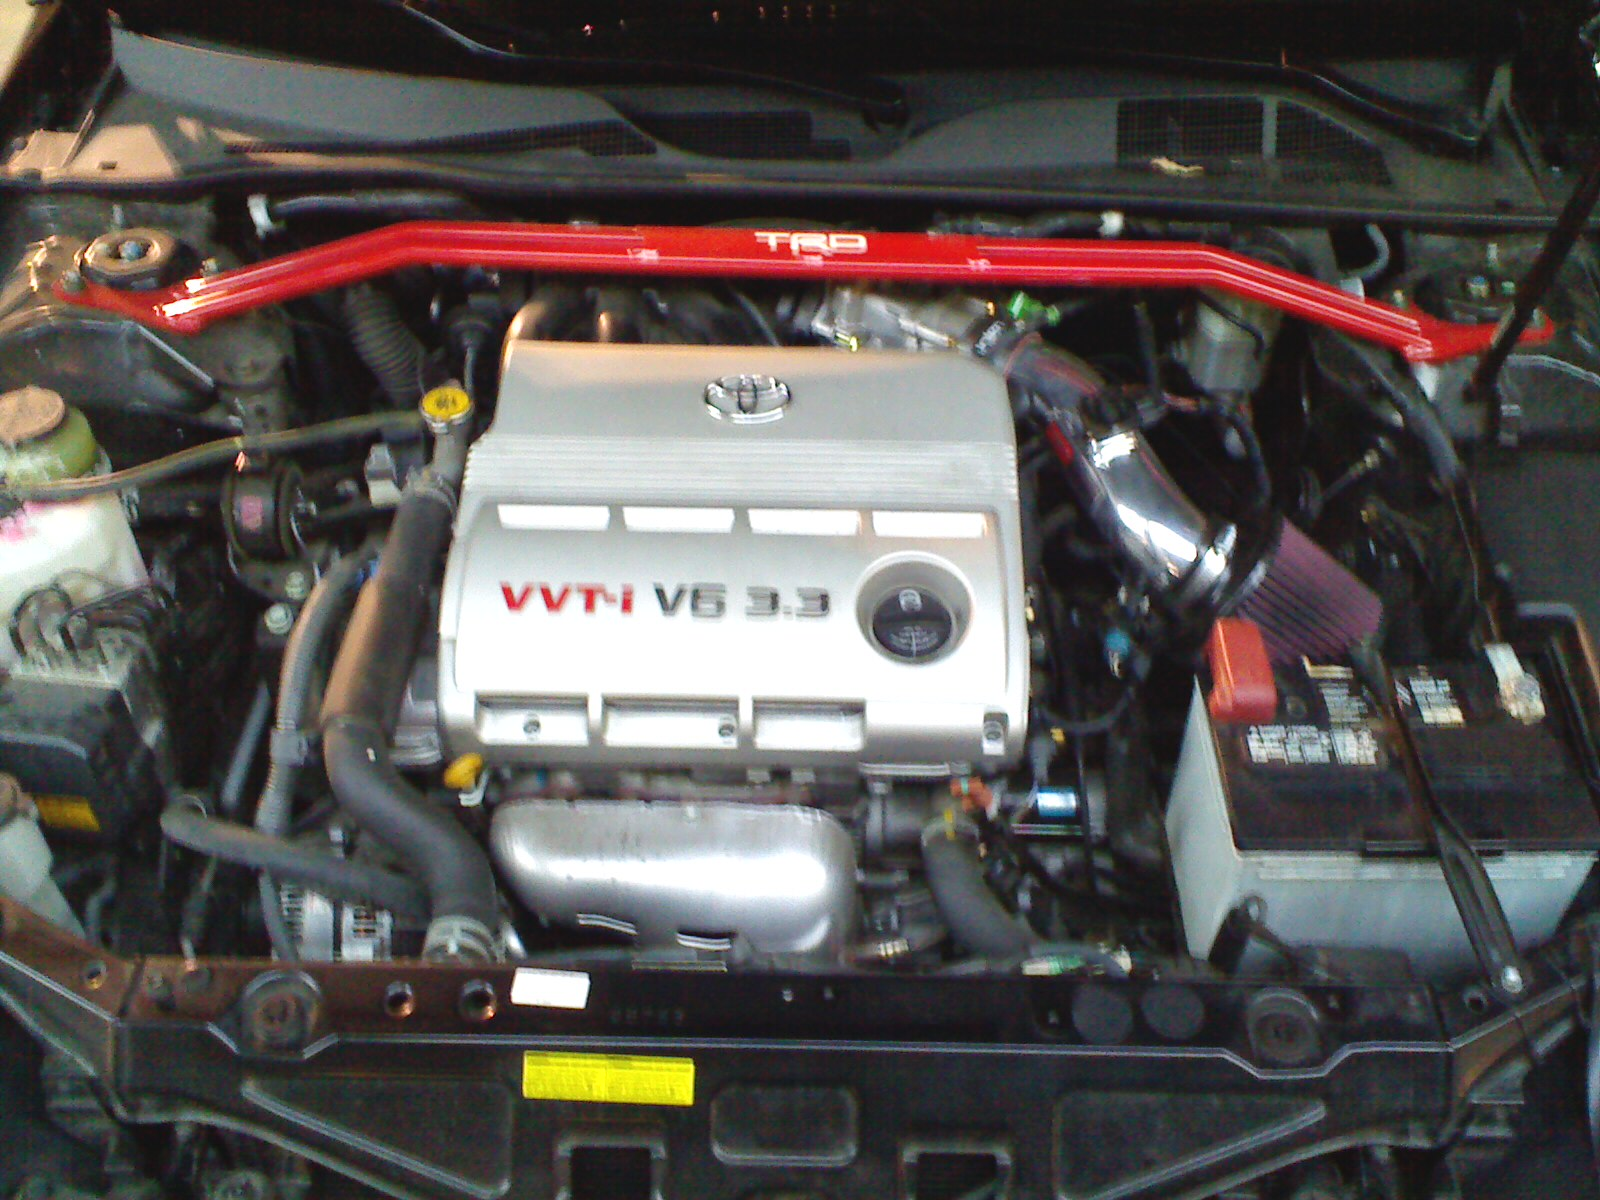 v1 6 engine in toyota solara v1 free engine image for user manual download. Black Bedroom Furniture Sets. Home Design Ideas